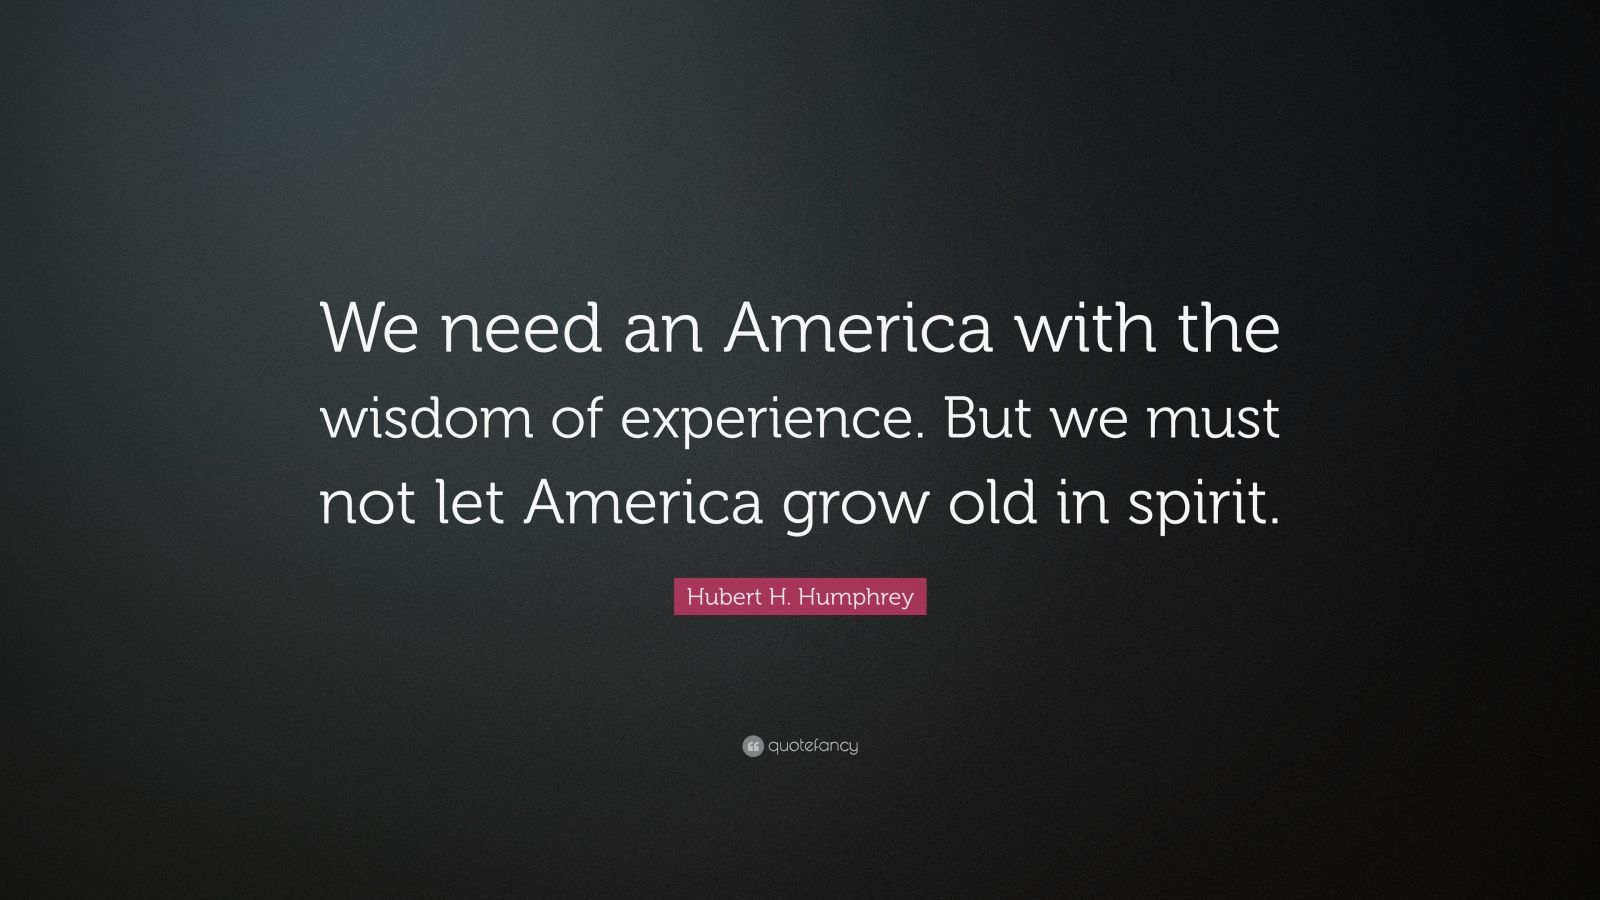 """Hubert H. Humphrey Quote: """"We need an America with the wisdom of experience. But we must not let America grow old in spirit."""""""